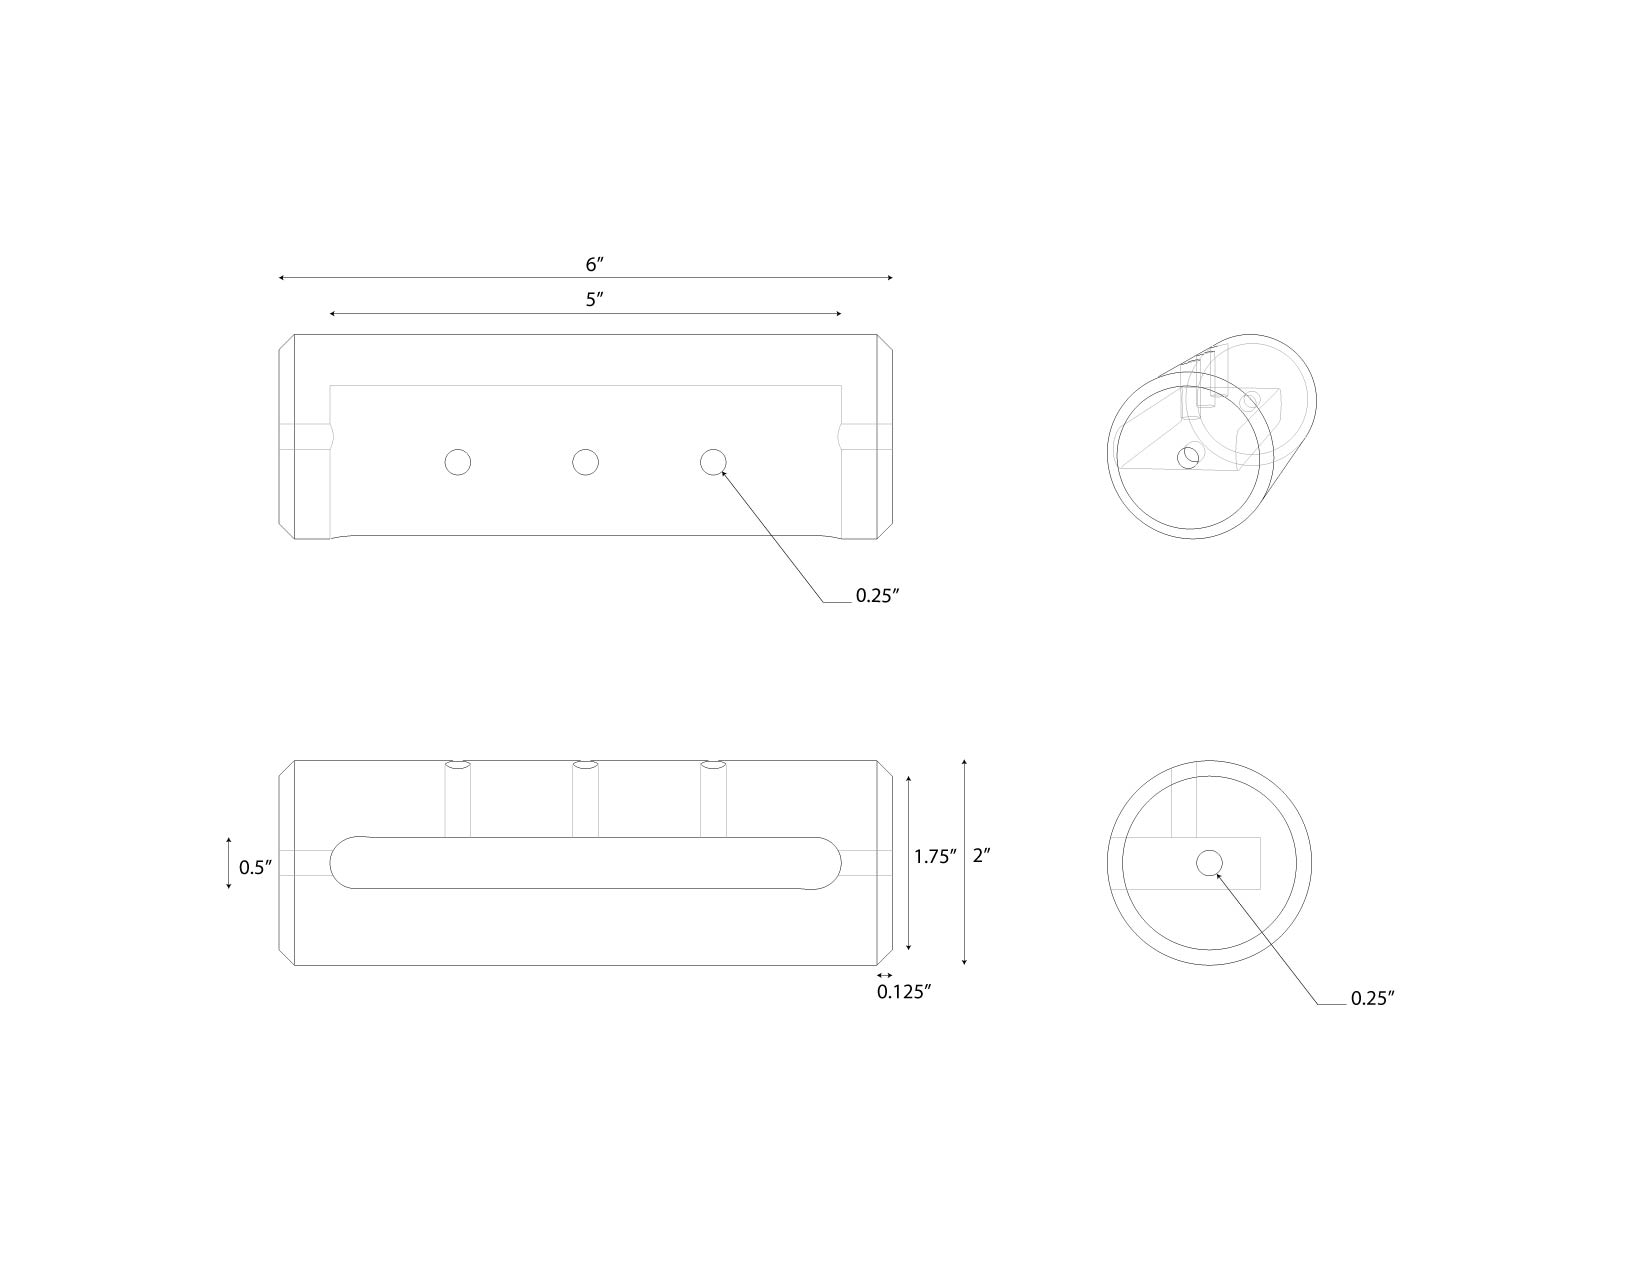 technical drawing of aluminum machined connection hardware